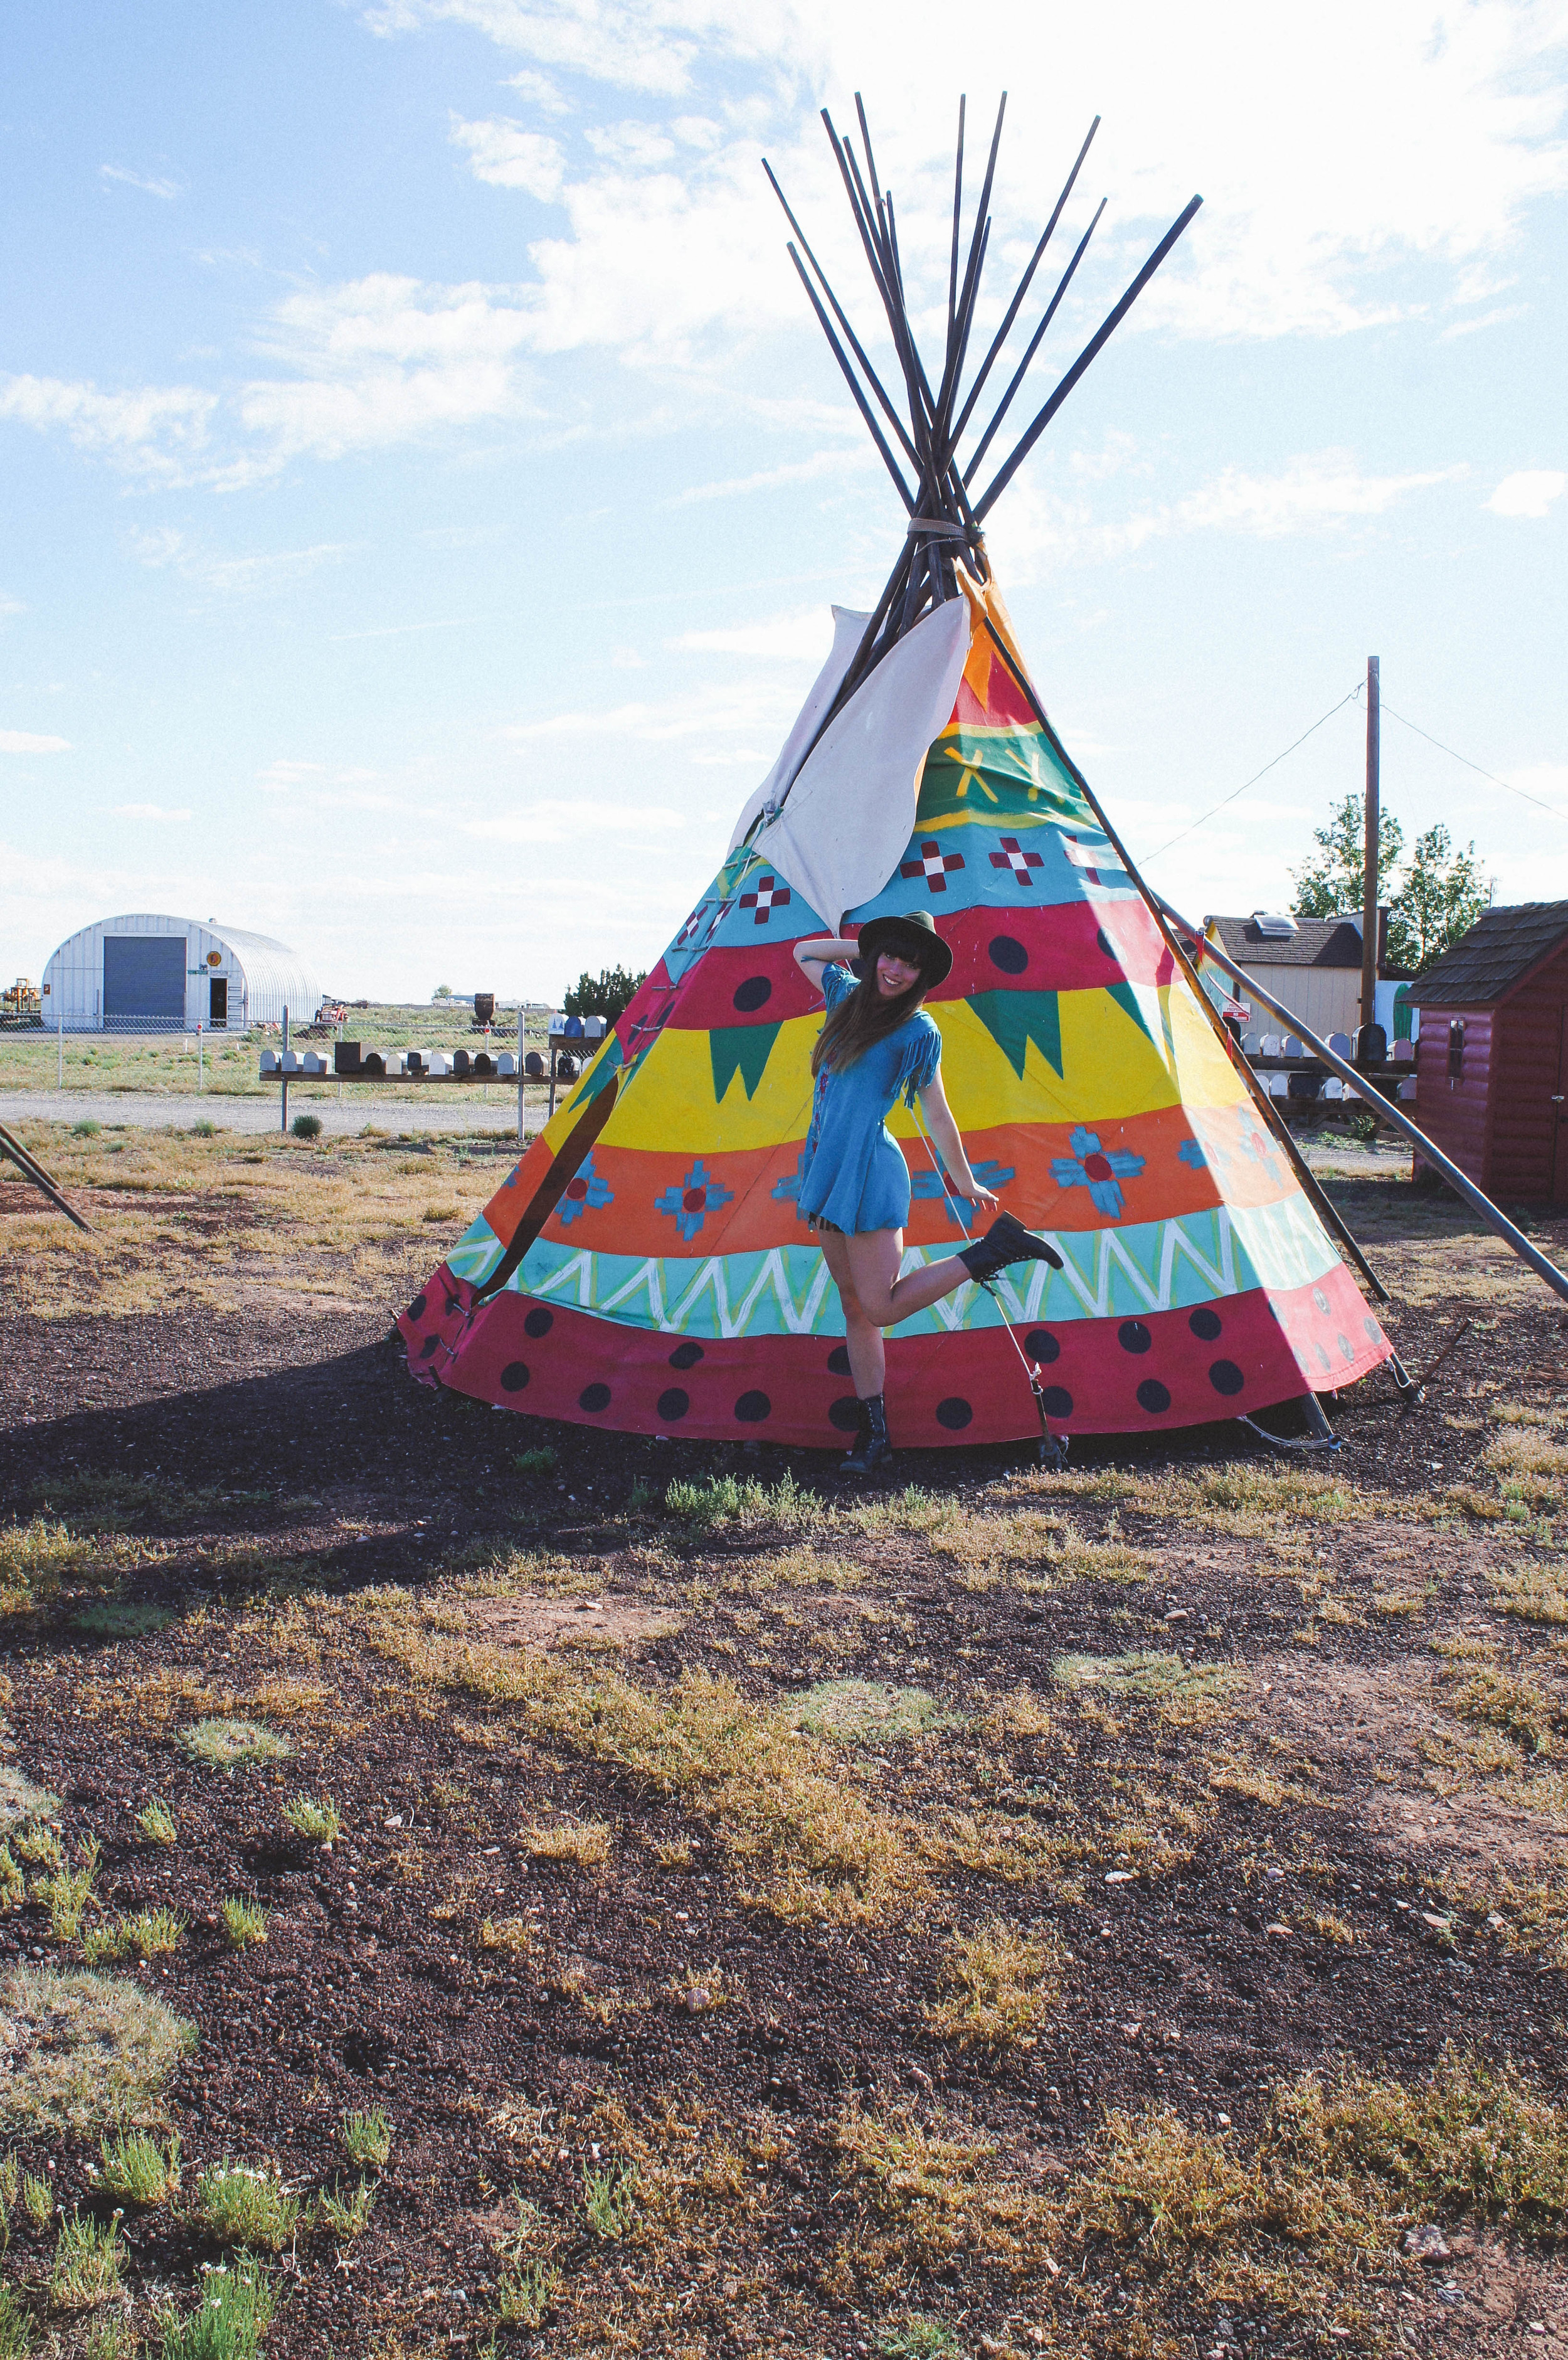 Found some tepees and fell in love.